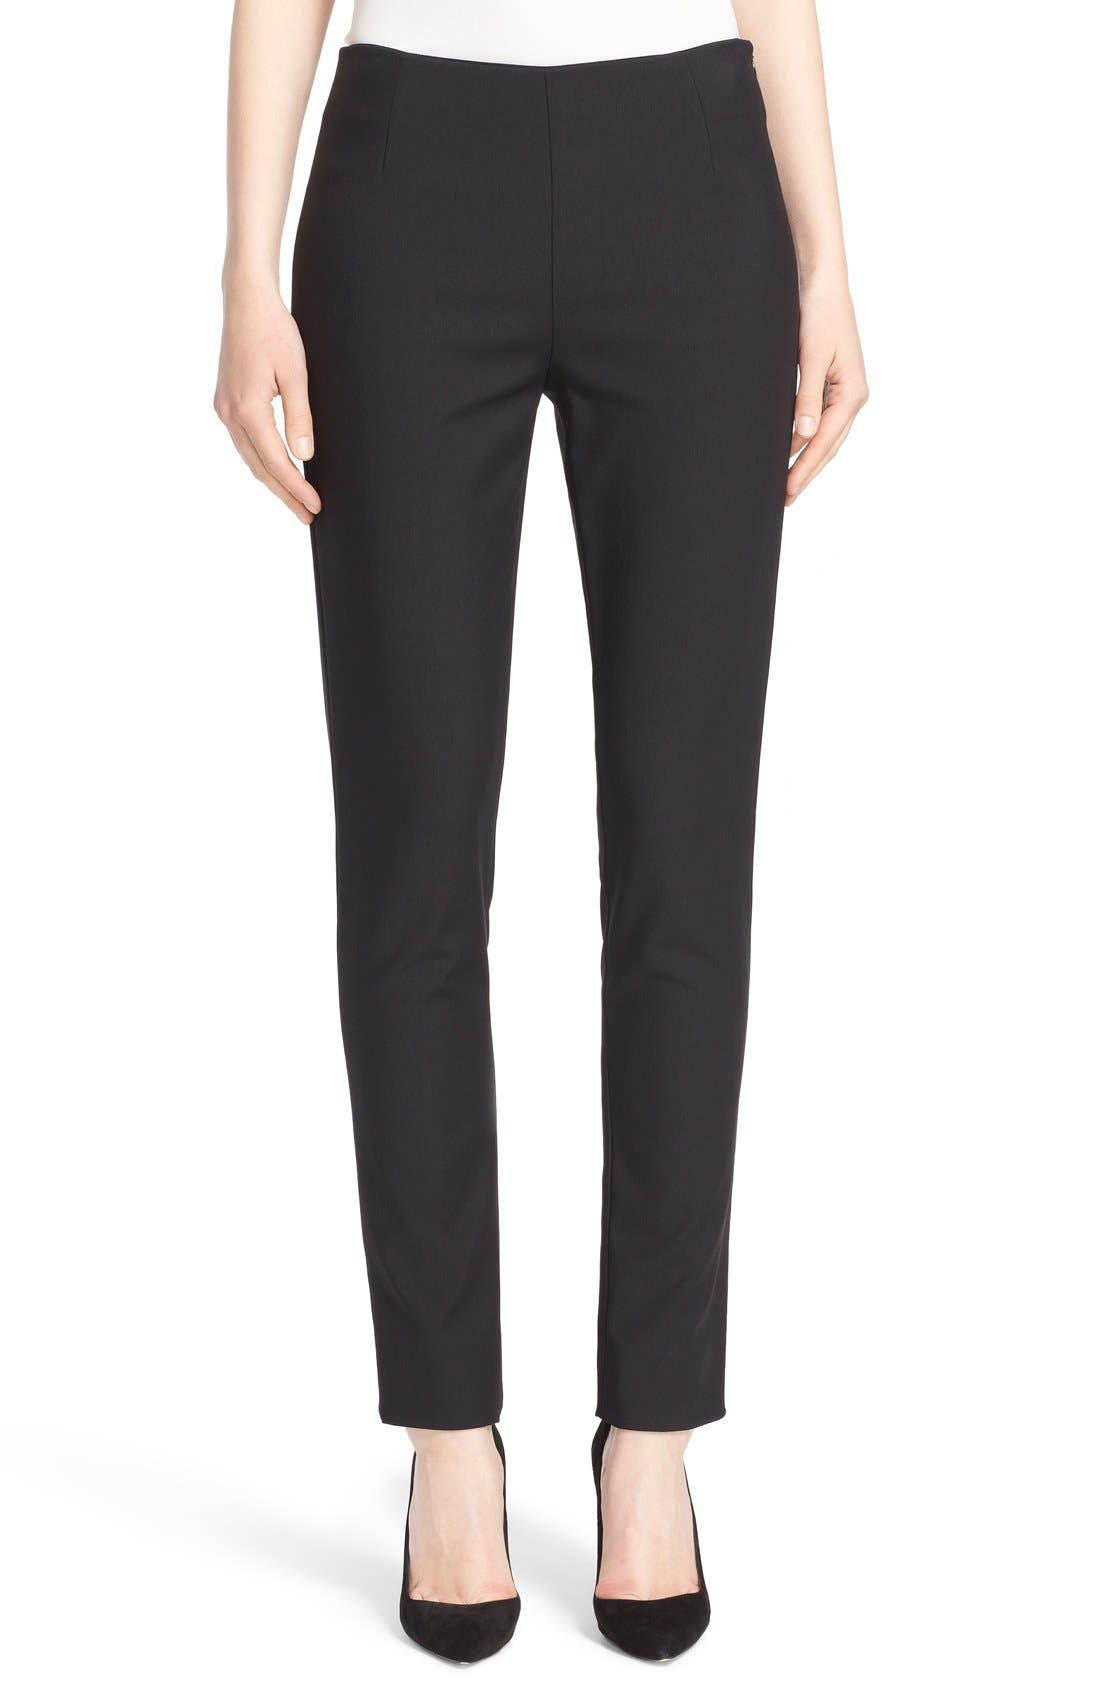 Lela Rose 'Catherine' Stretch Twill Ankle Pants